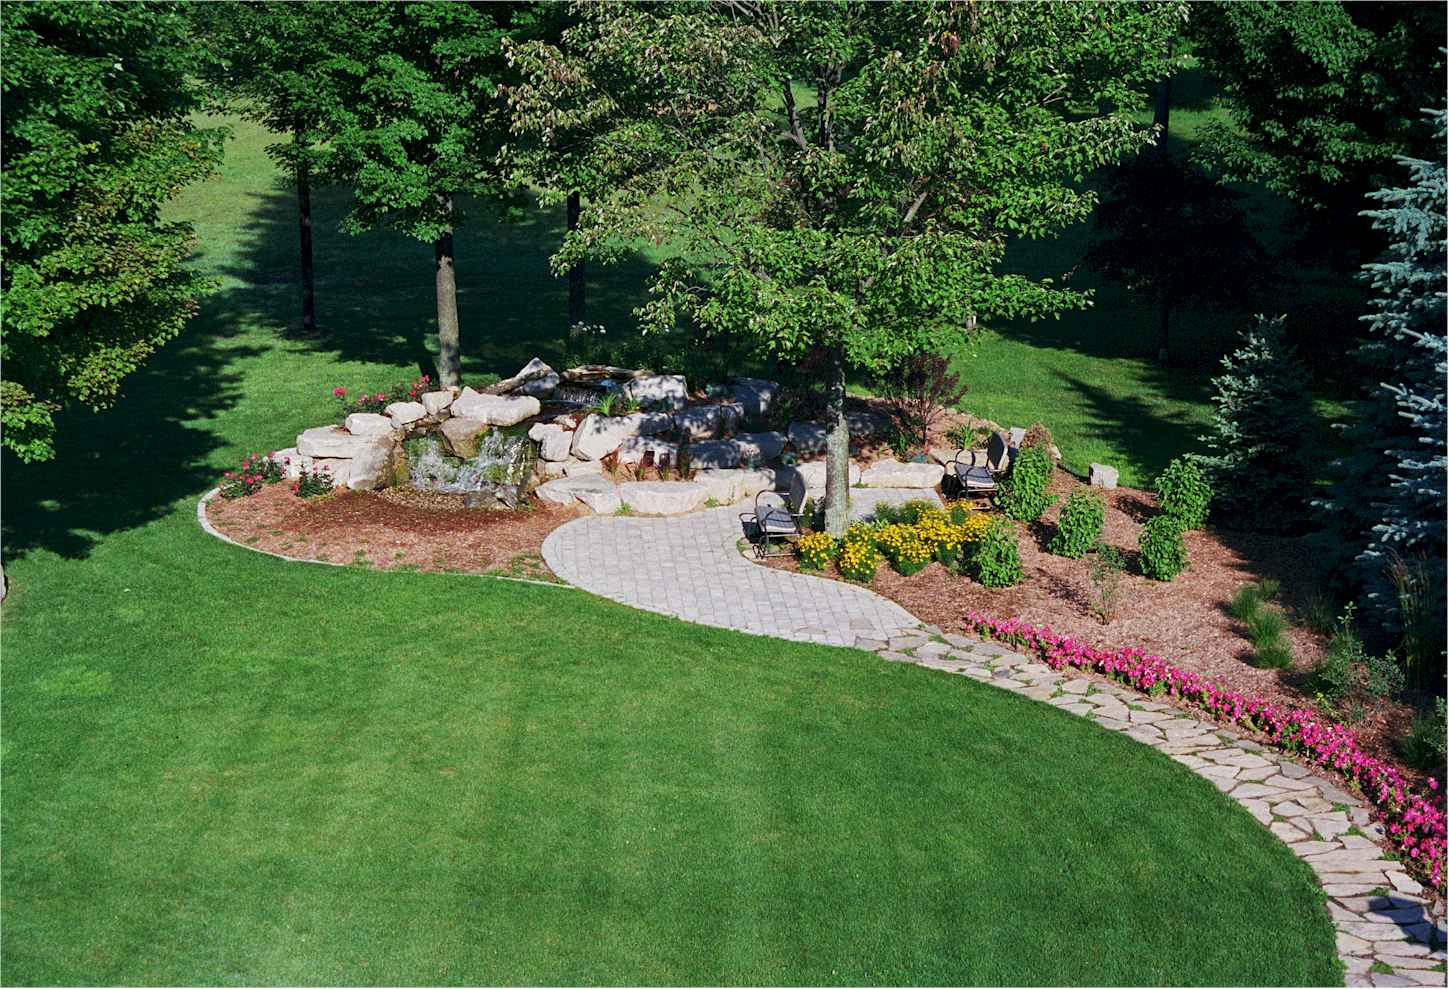 Wallpaper backgrounds landscaping for Great landscaping ideas backyard